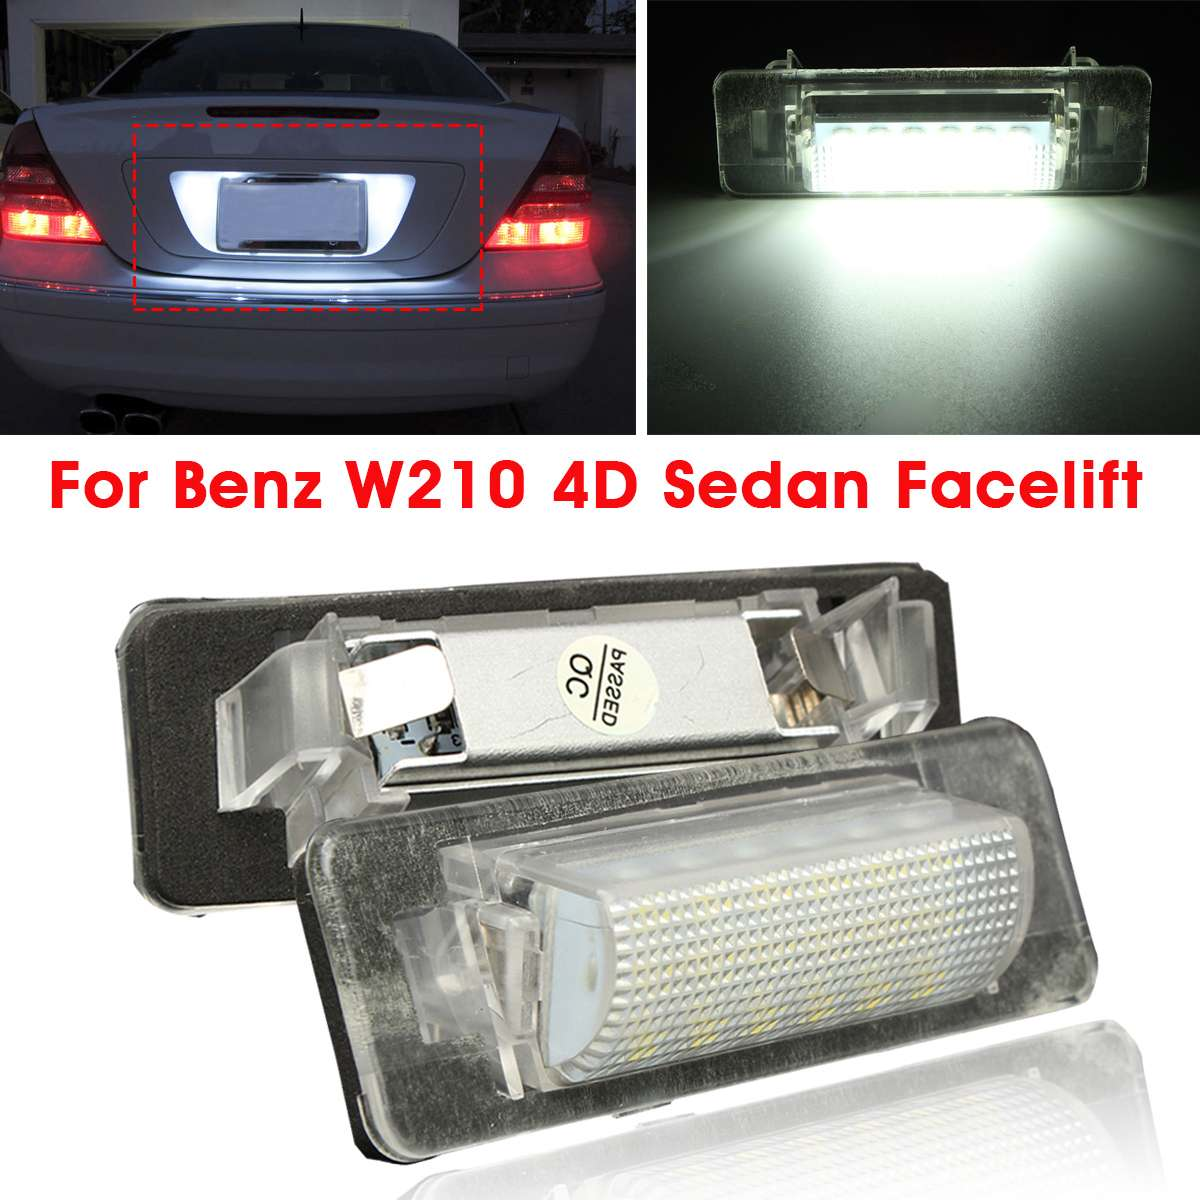 2pcs Error Free 18 LED Car Number License Plate Light For <font><b>Mercedes</b></font> <font><b>Benz</b></font> W210 E300 E320 E420 W202 4D <font><b>C230</b></font> C280 C43 AMG image